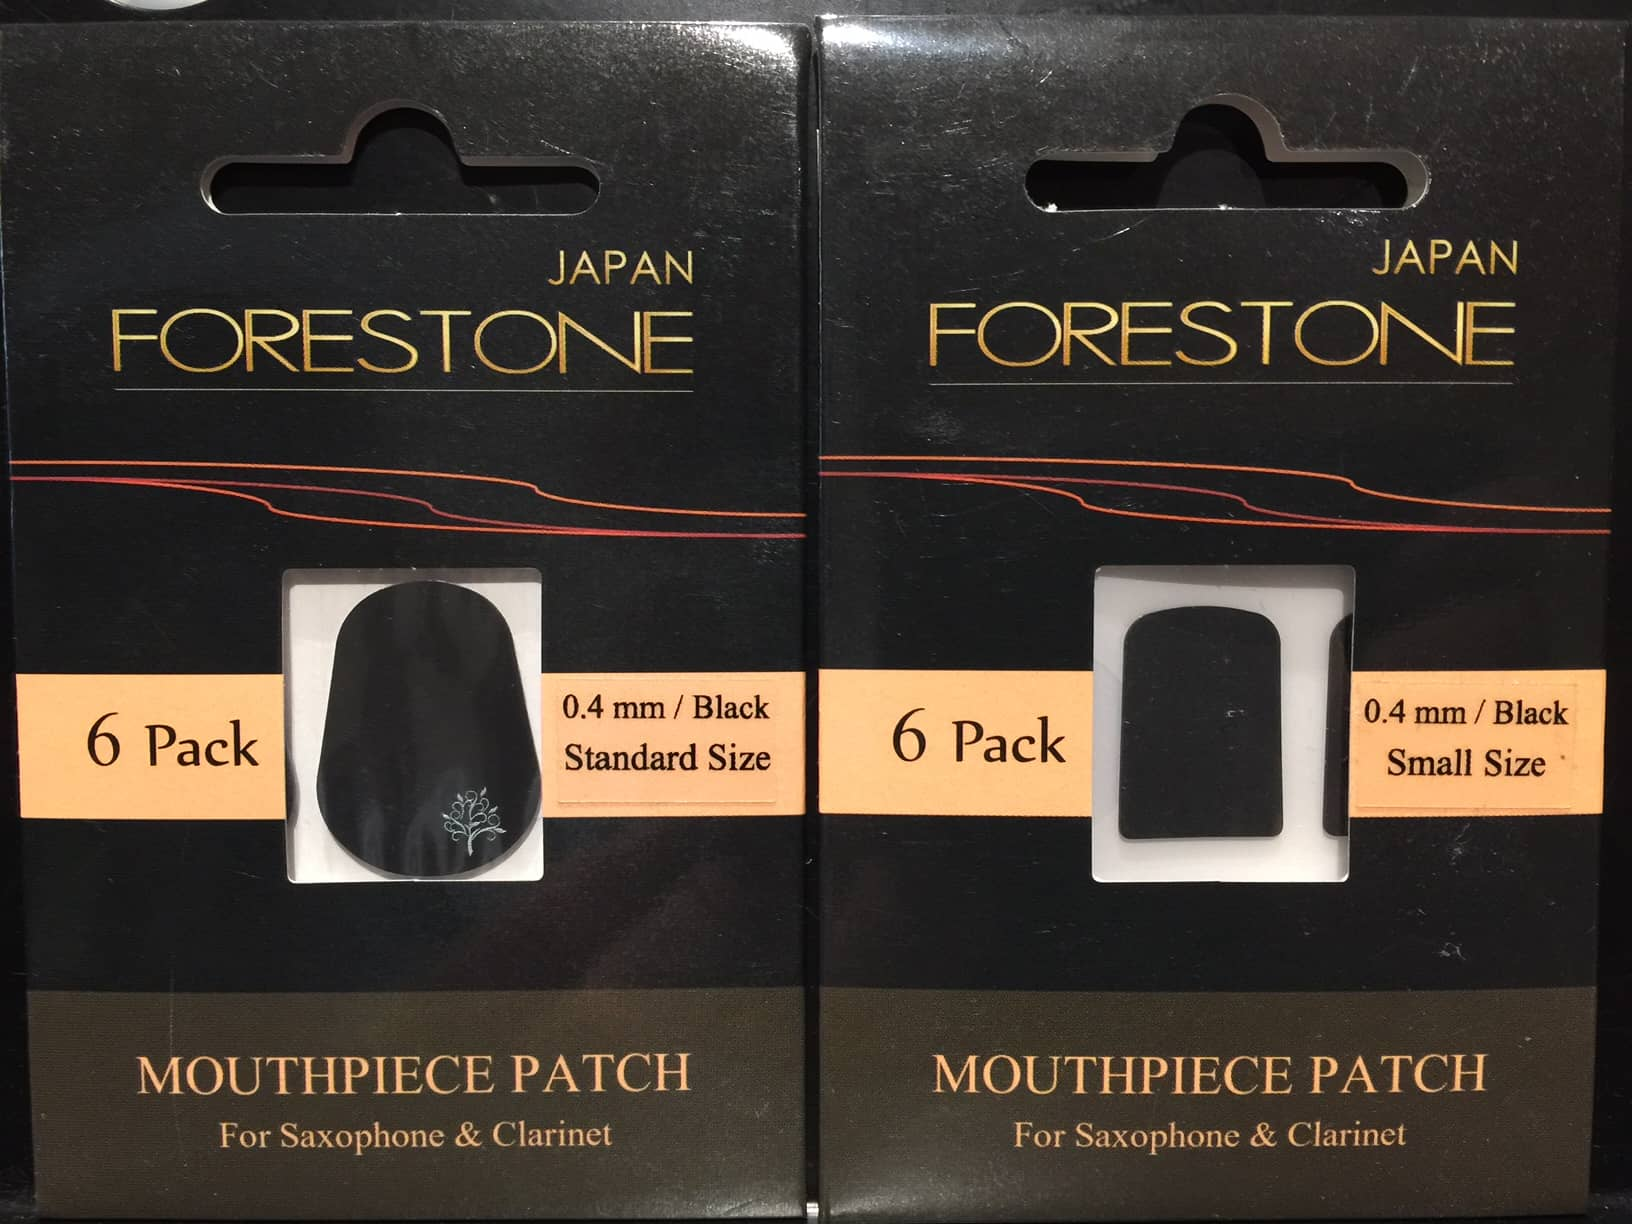 Forestone Saxophone Mouthpiece Patch Review